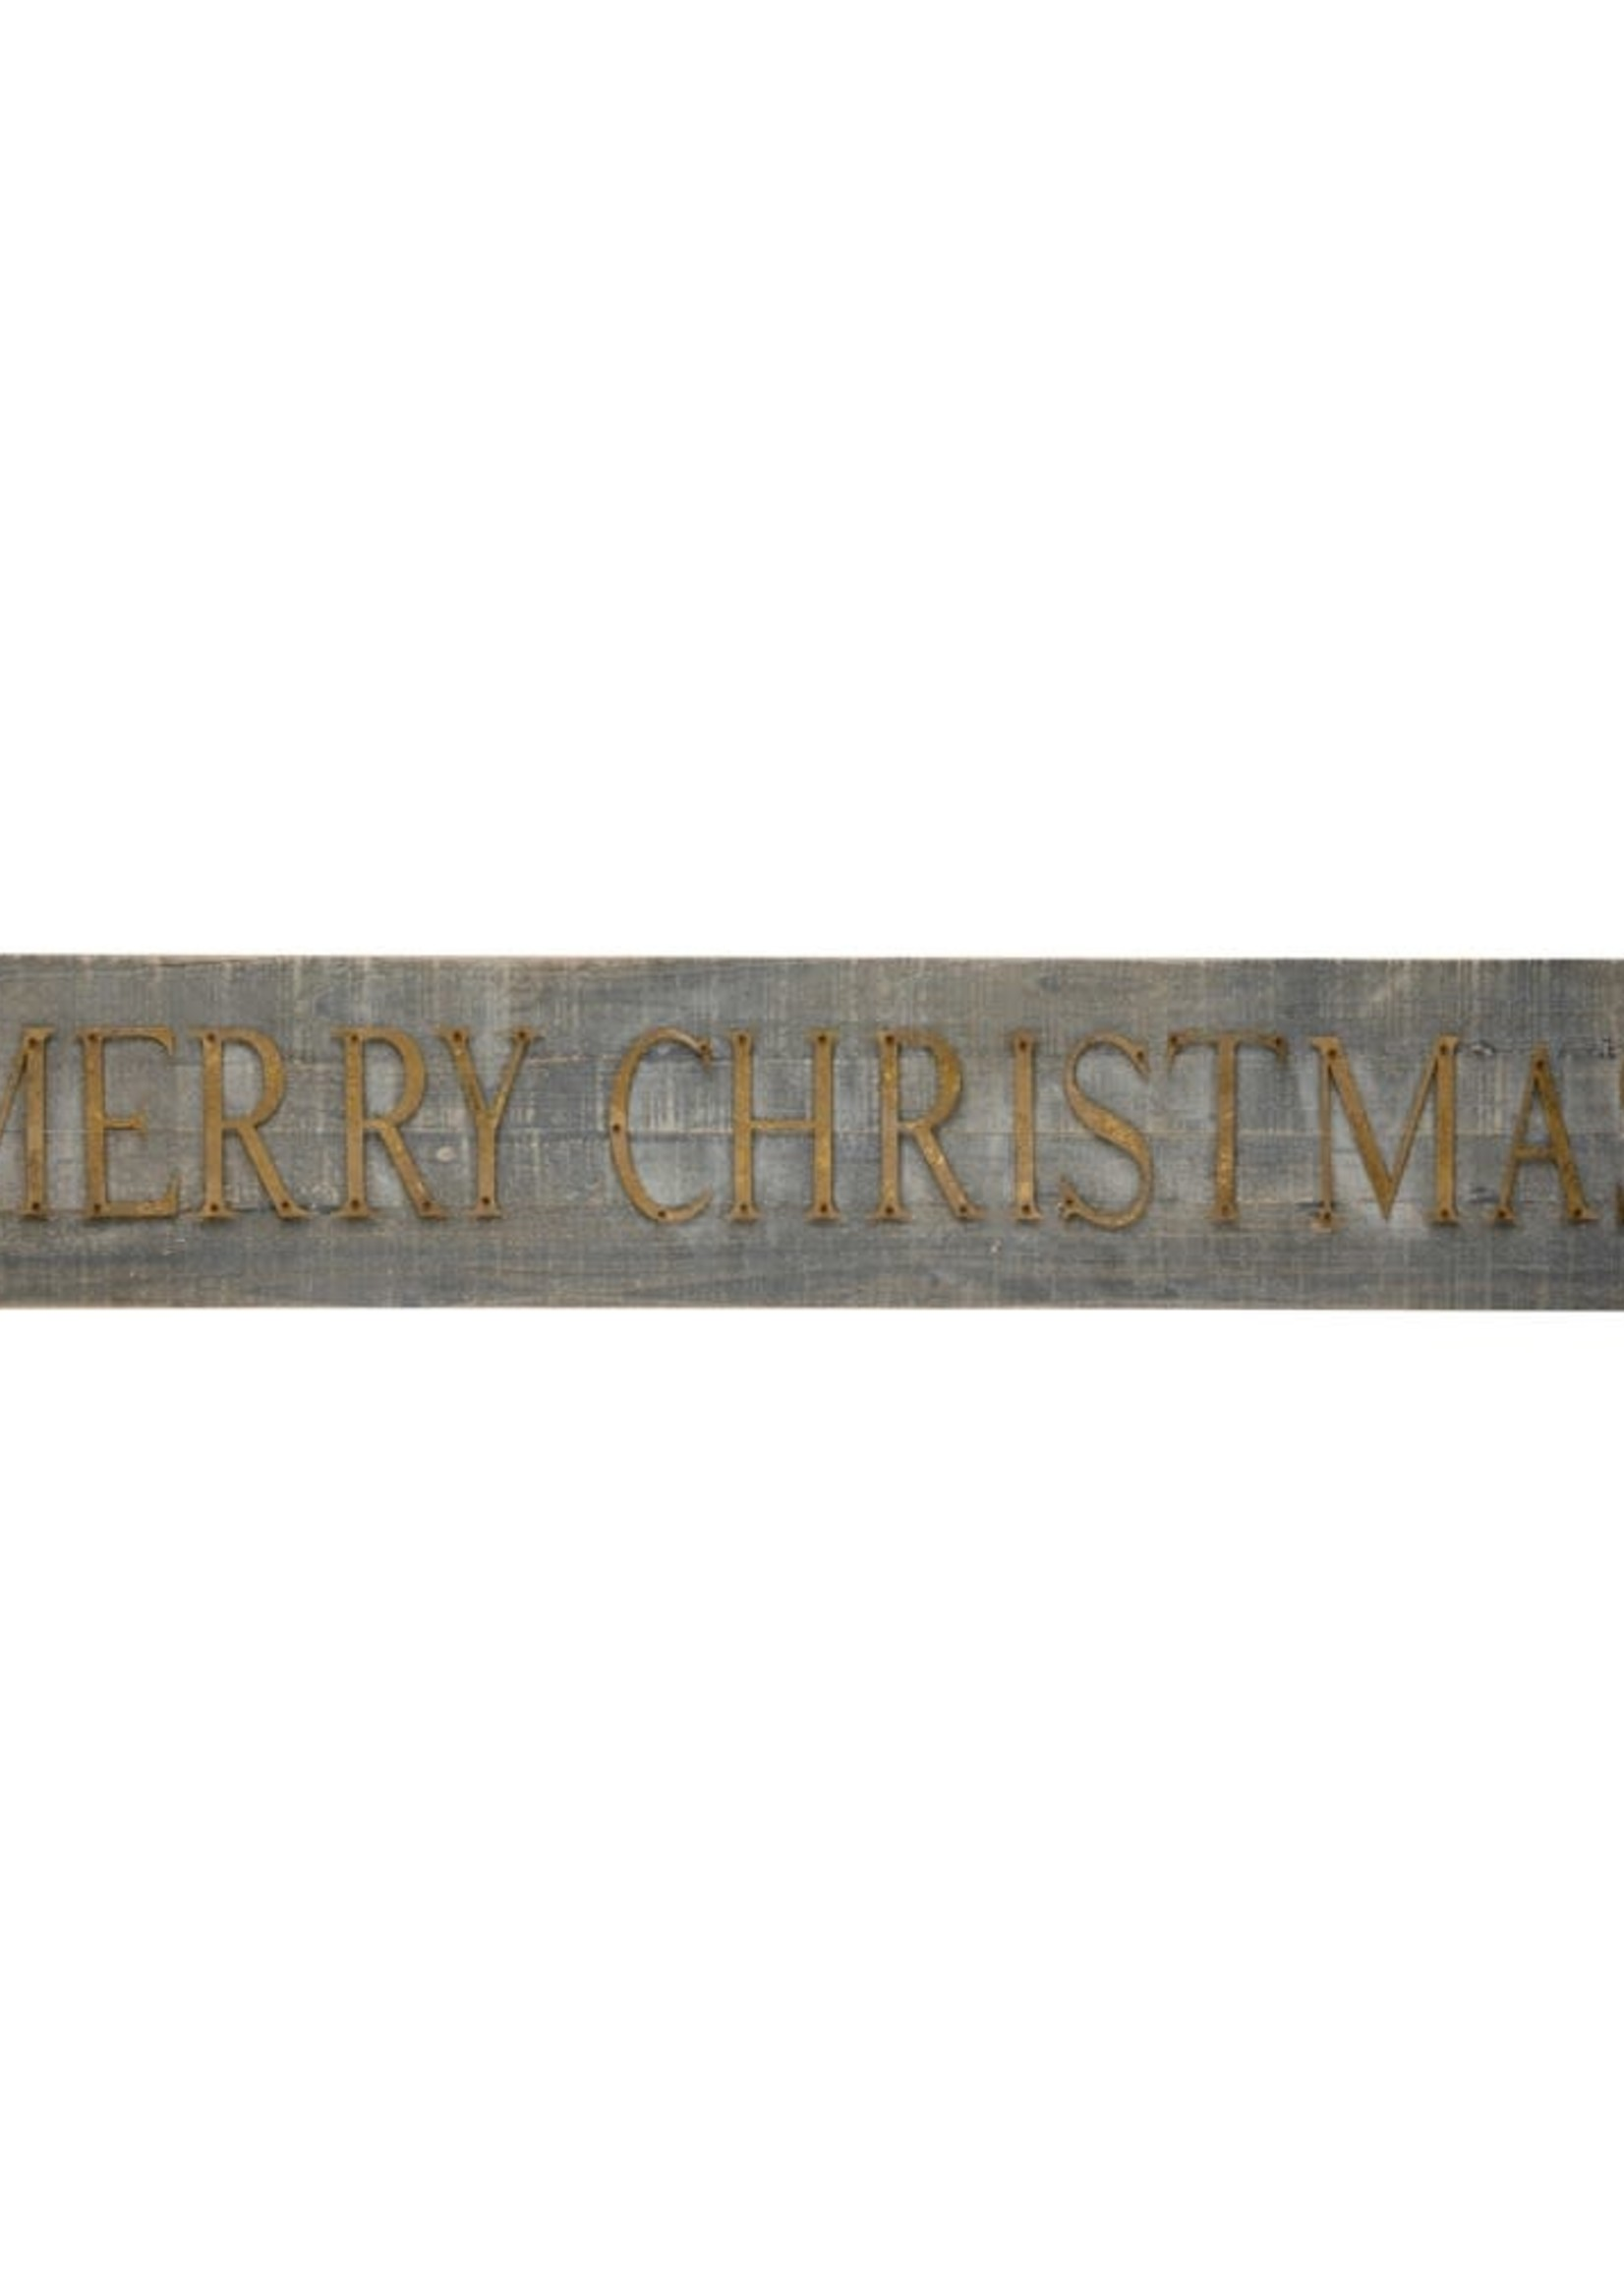 """44-1/2""""W x 7-3/4""""H Wood & Metal Wall Dcor """"Merry Christmas"""", Distressed Finish"""